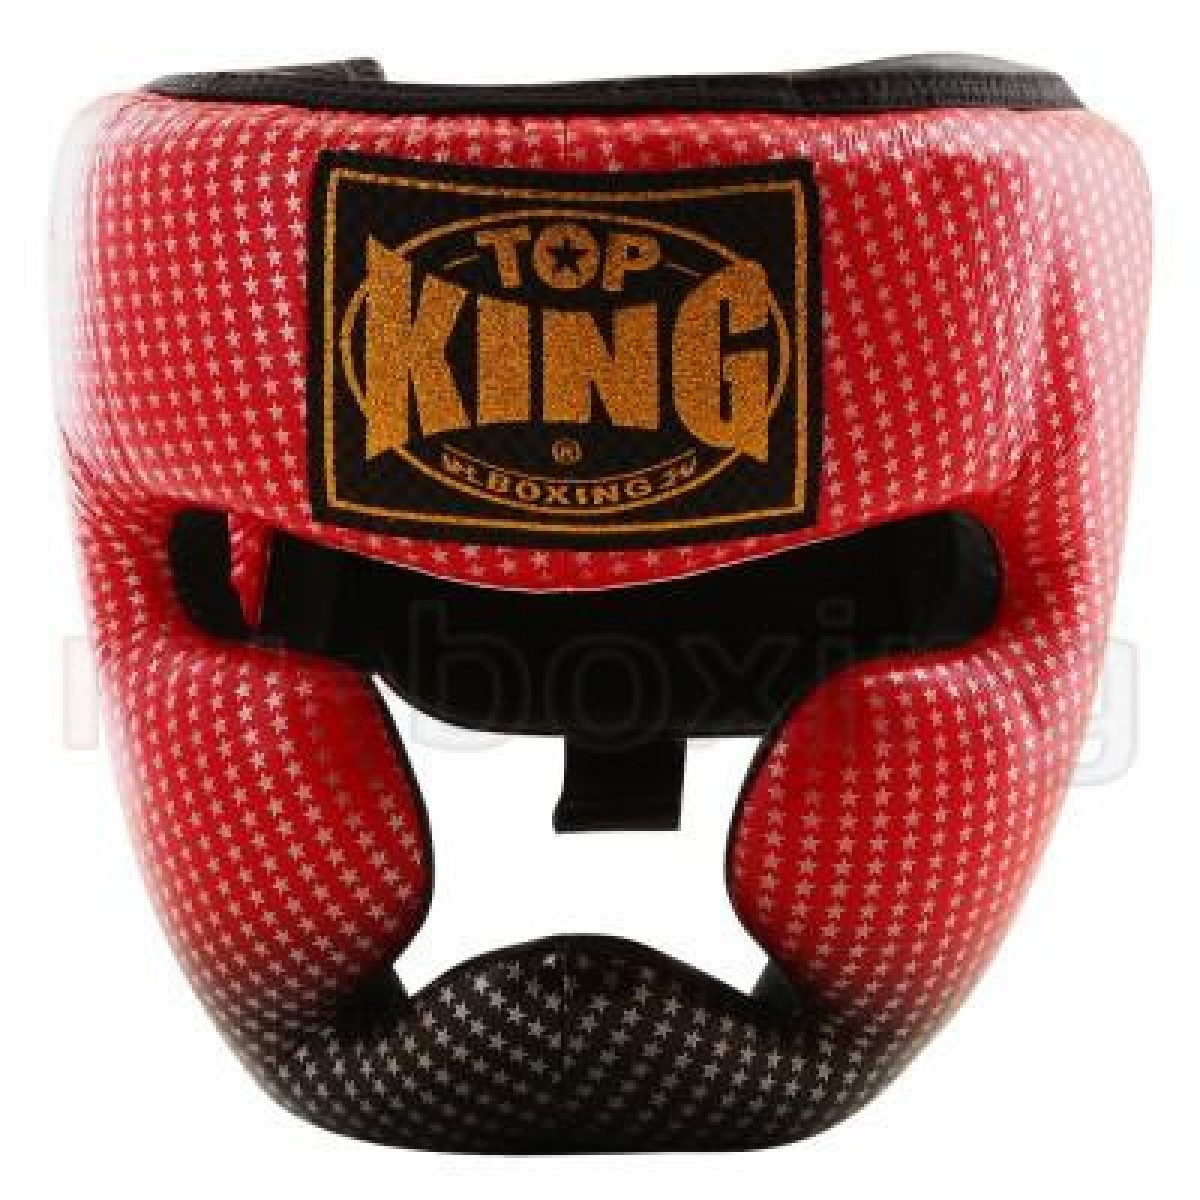 Шлем Top King Super Star красный